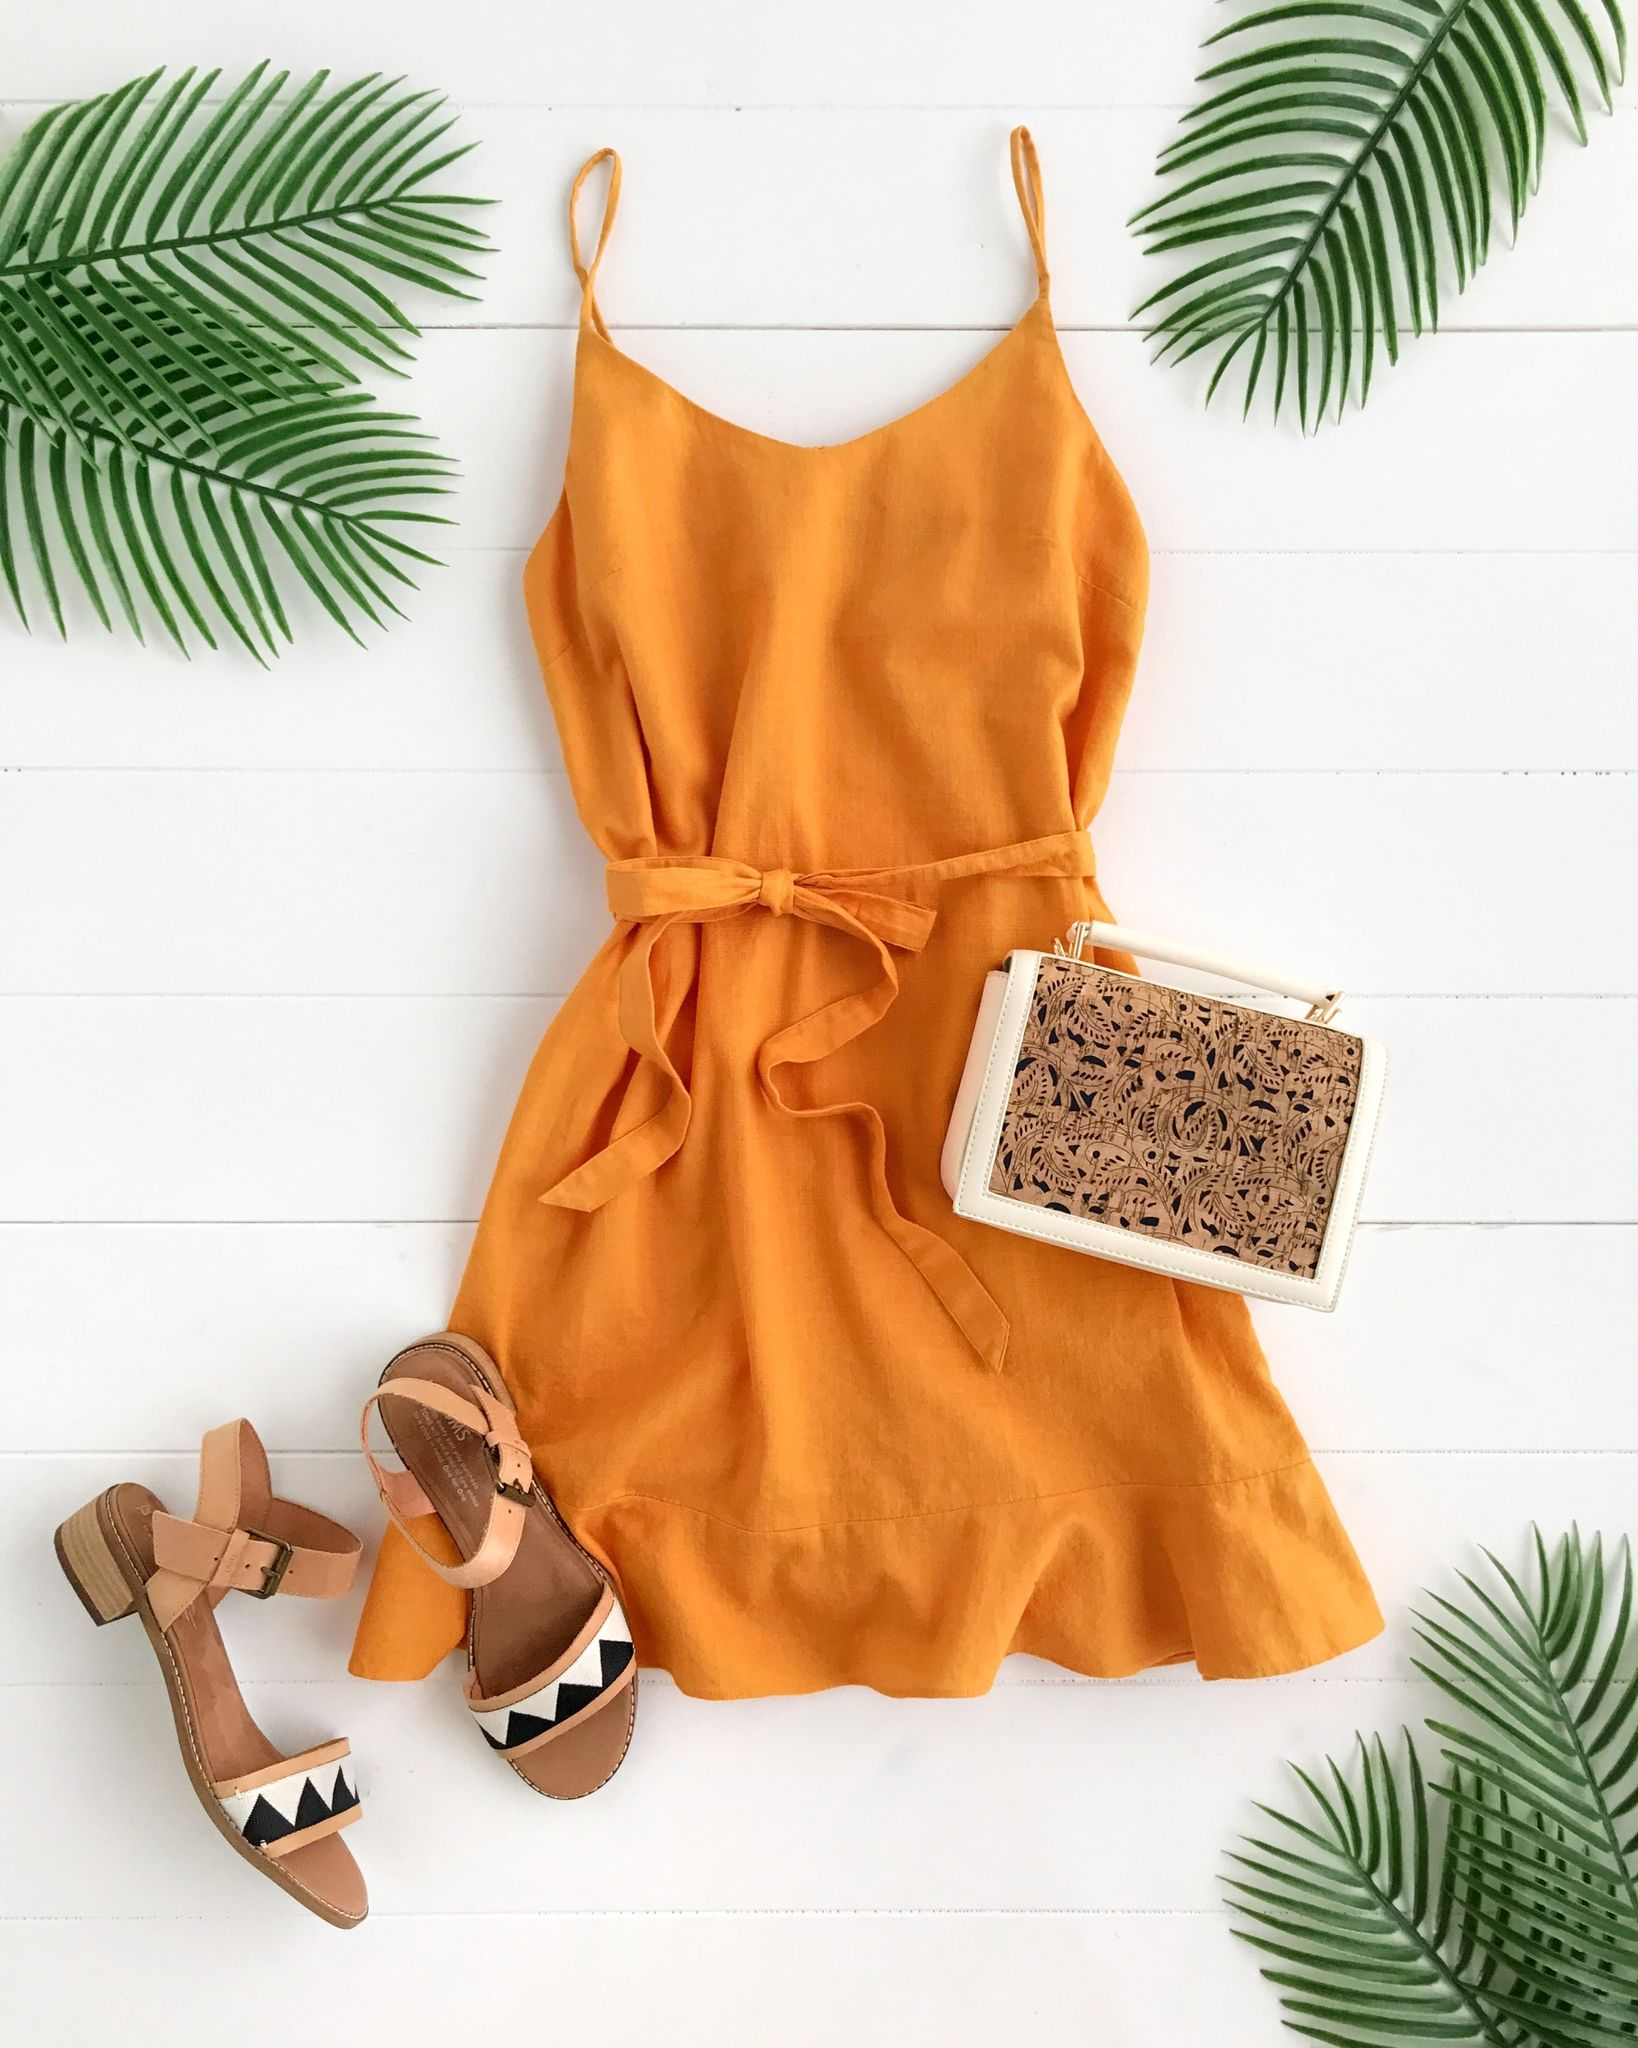 schedule a fix for summer-perfect style.   my style in 2018